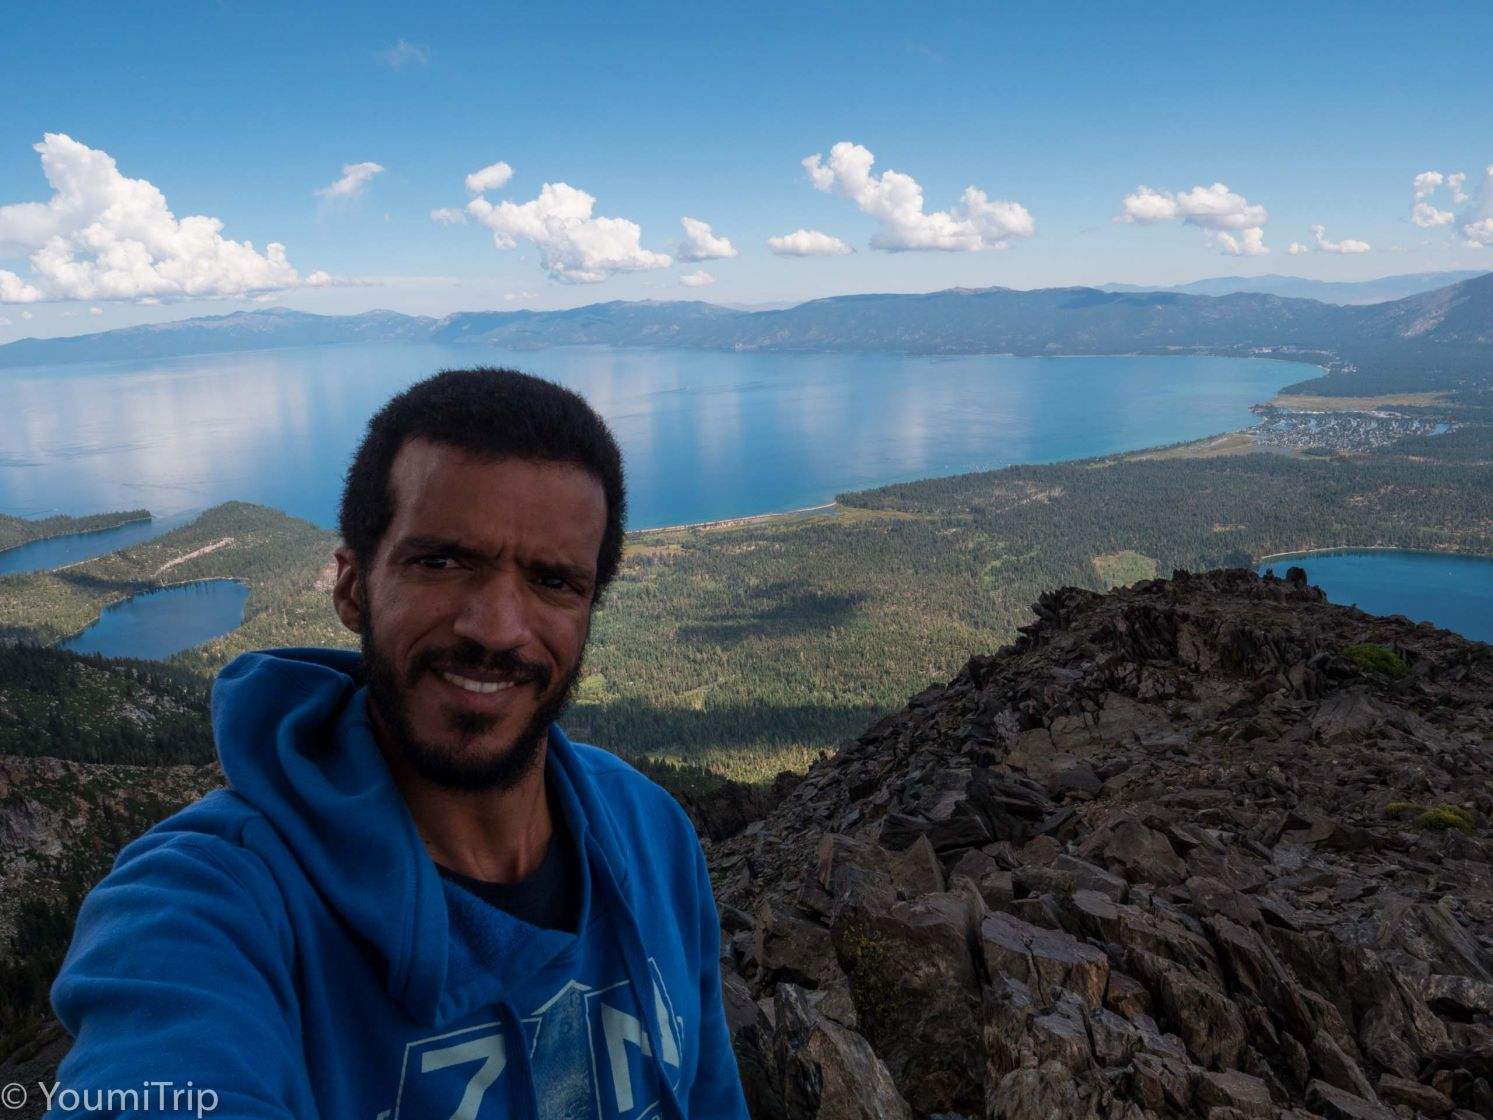 Selfie at the top of Mt Tallac